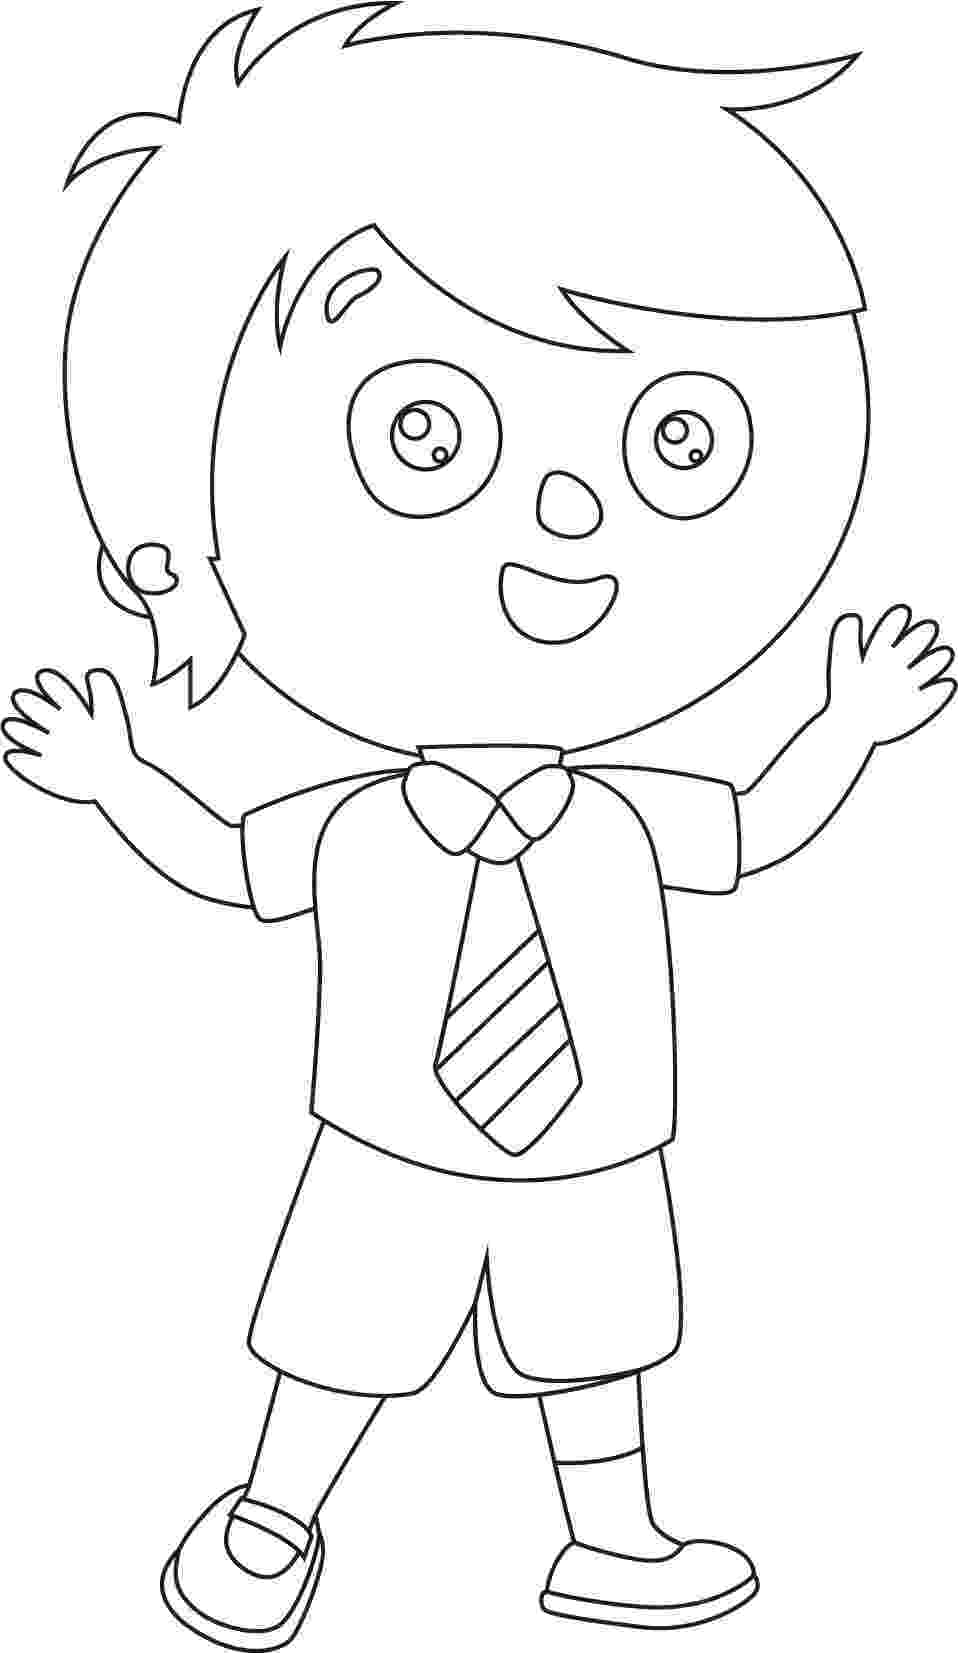 student coloring page good student boy coloring page wecoloringpagecom page coloring student